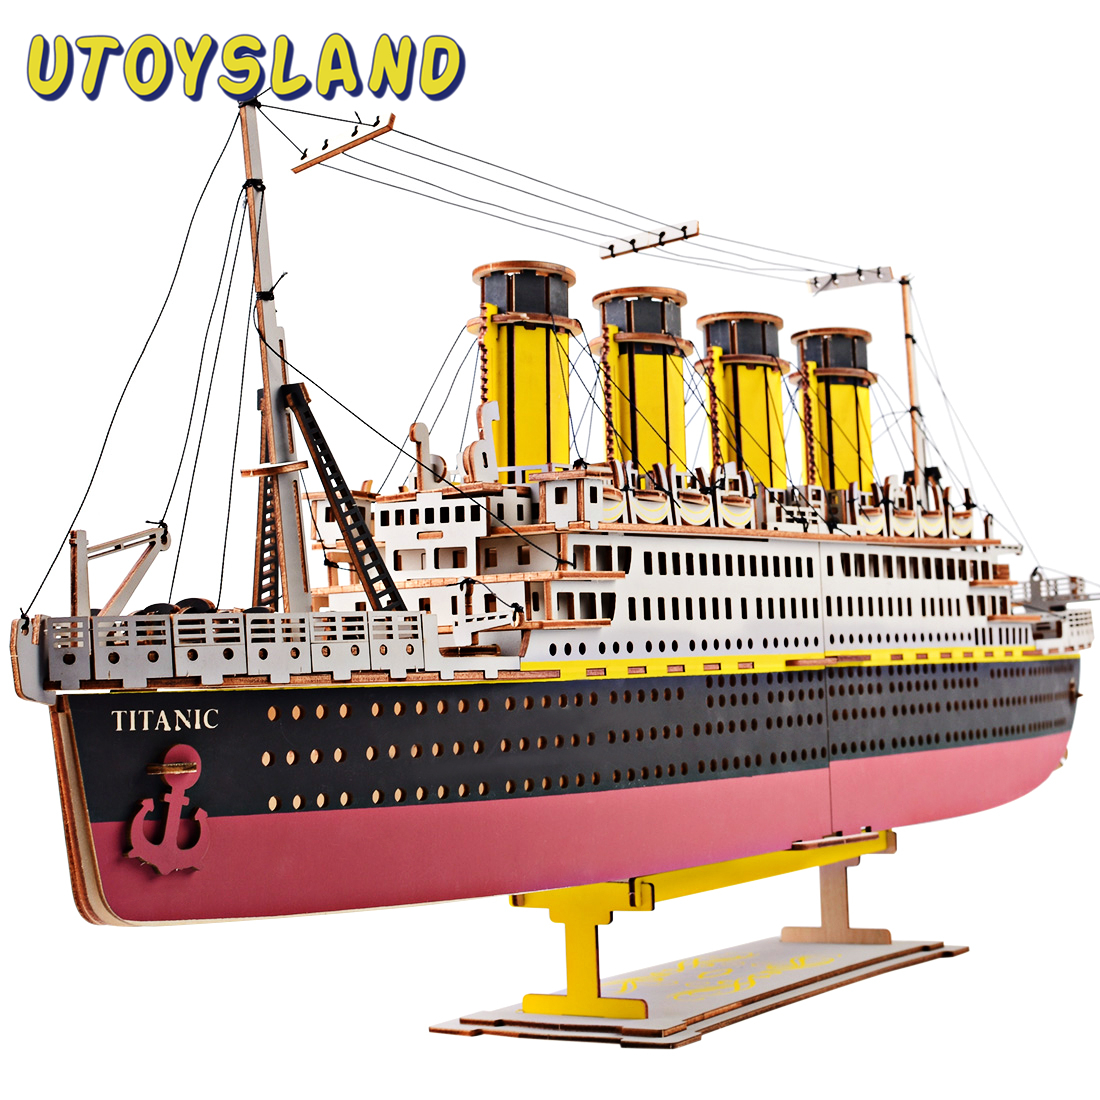 High-Precision Laser Cutting Puzzle 3D Wooden Jigsaw Model Children Intelligence Developmental Toys Model Building Kit - Titanic